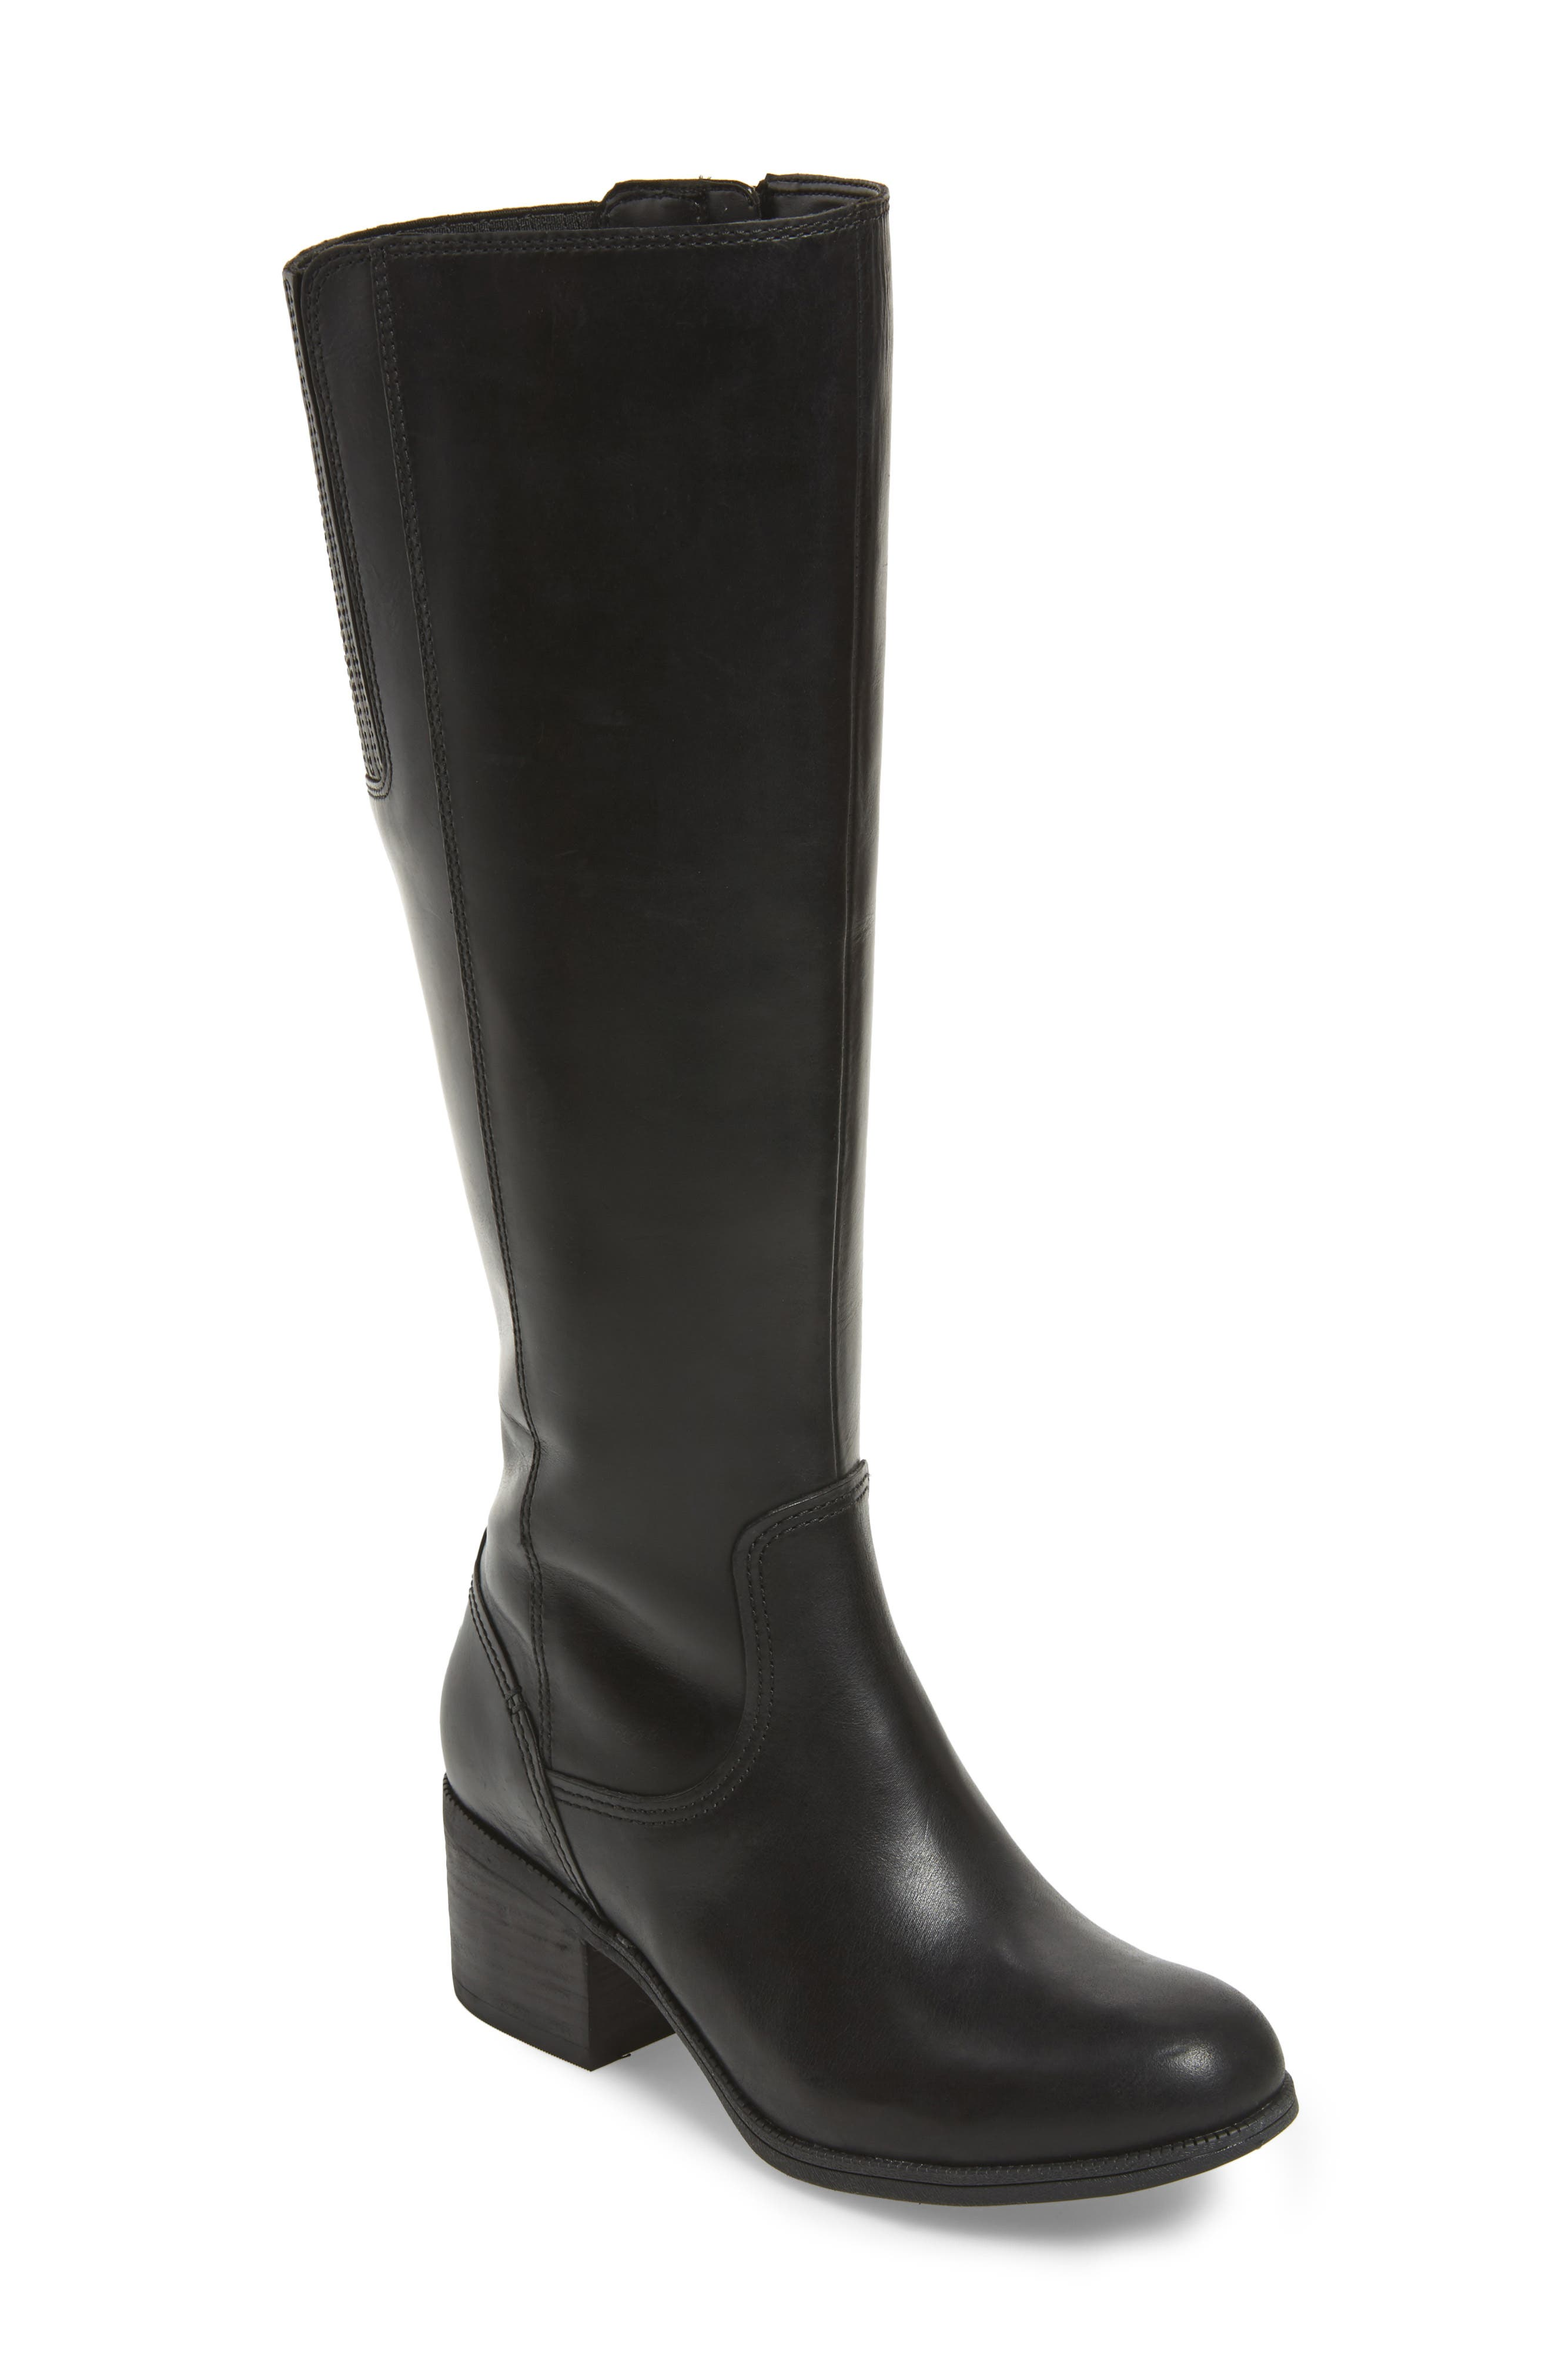 Maypearl Viola Boot,                         Main,                         color, Black Leather